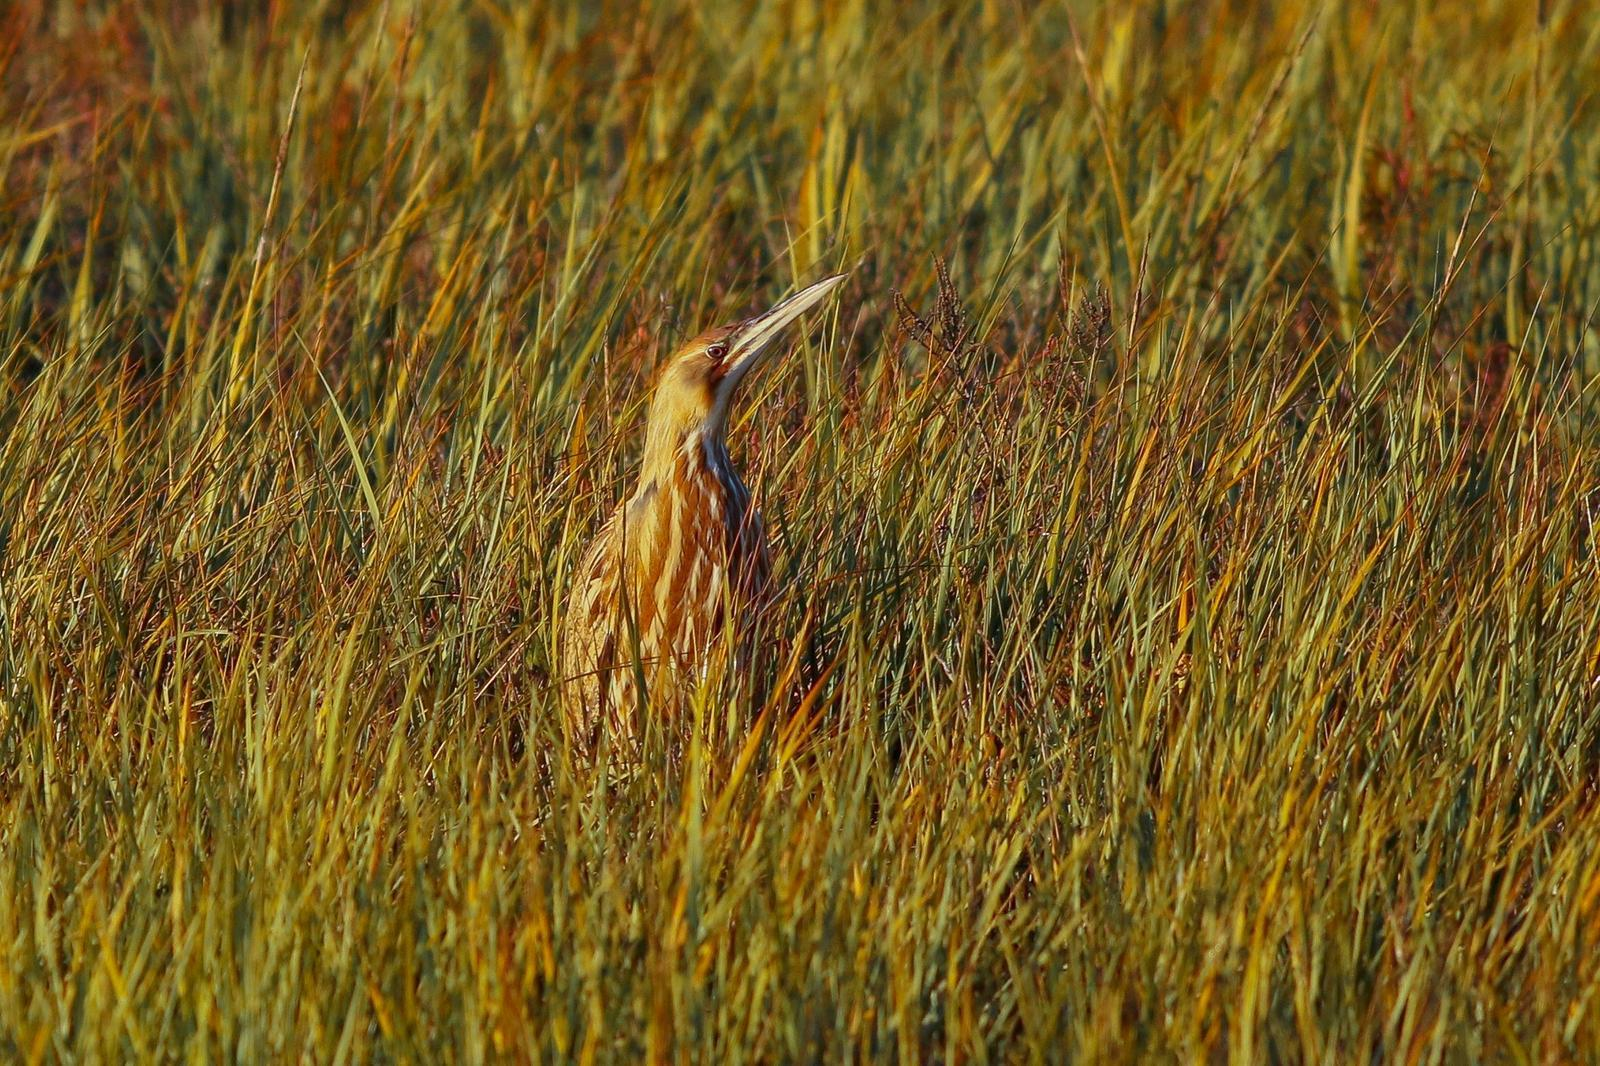 American Bittern Photo by Tom Ford-Hutchinson